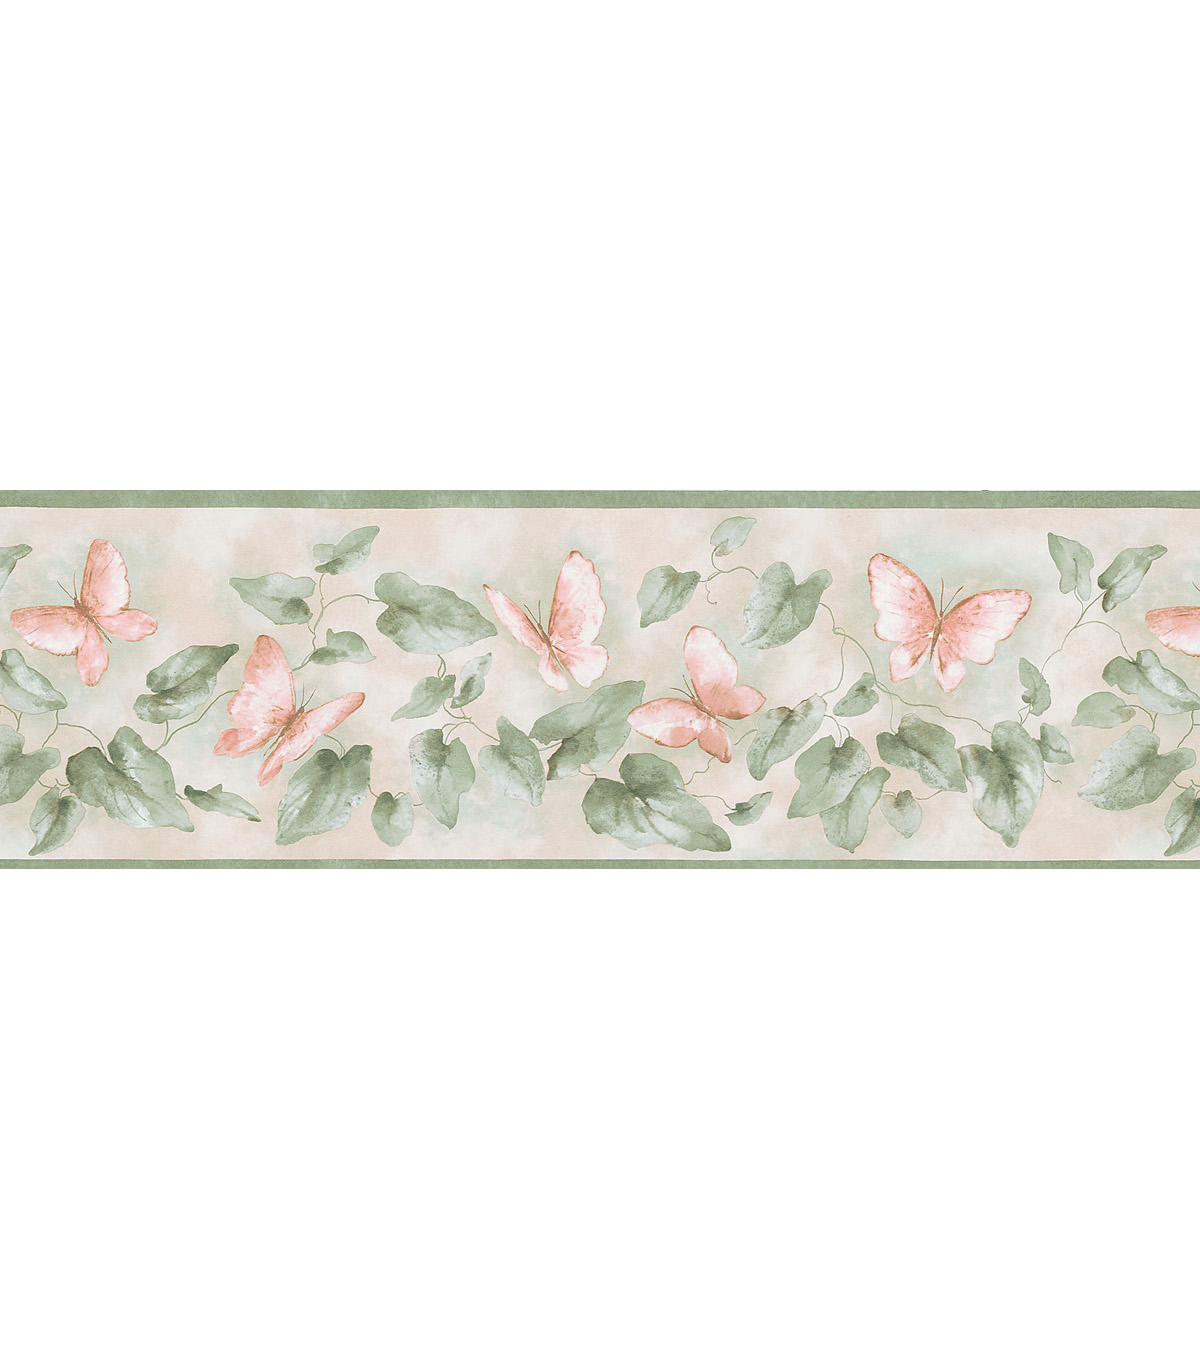 Butterfly Lily Pad Wallpaper Border, Green